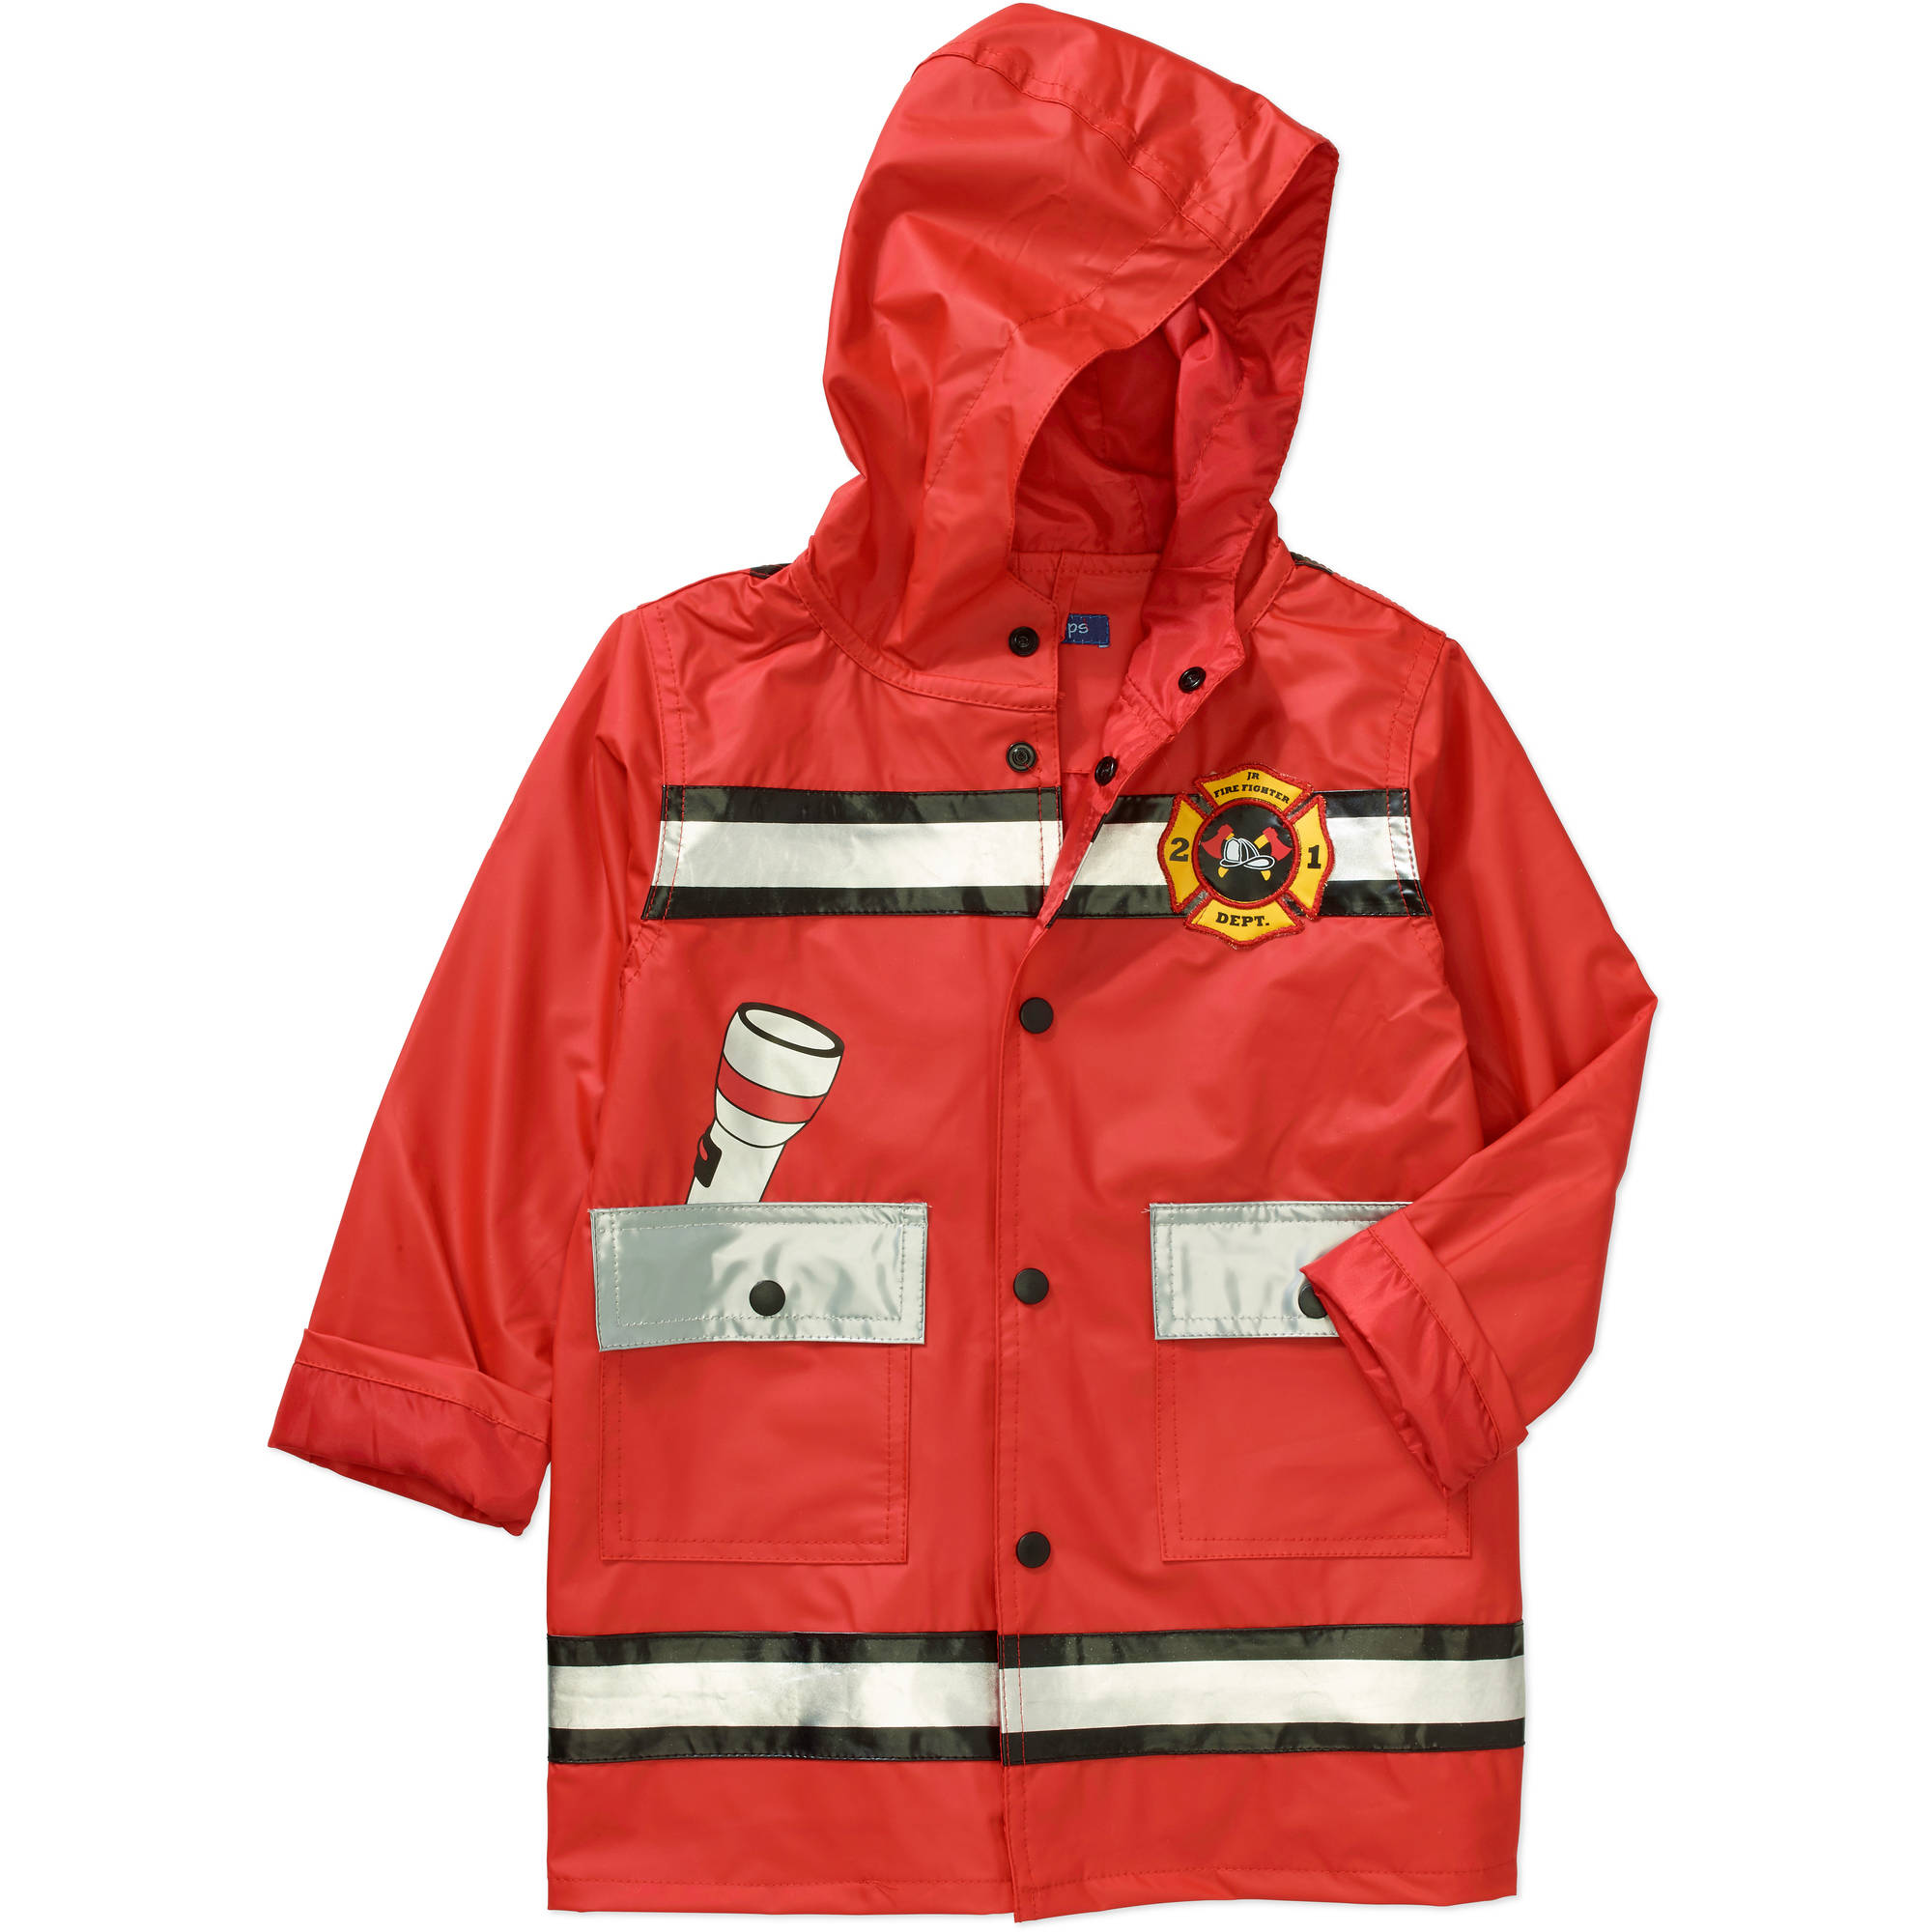 Raindrops Little Boys' Rain Jacket